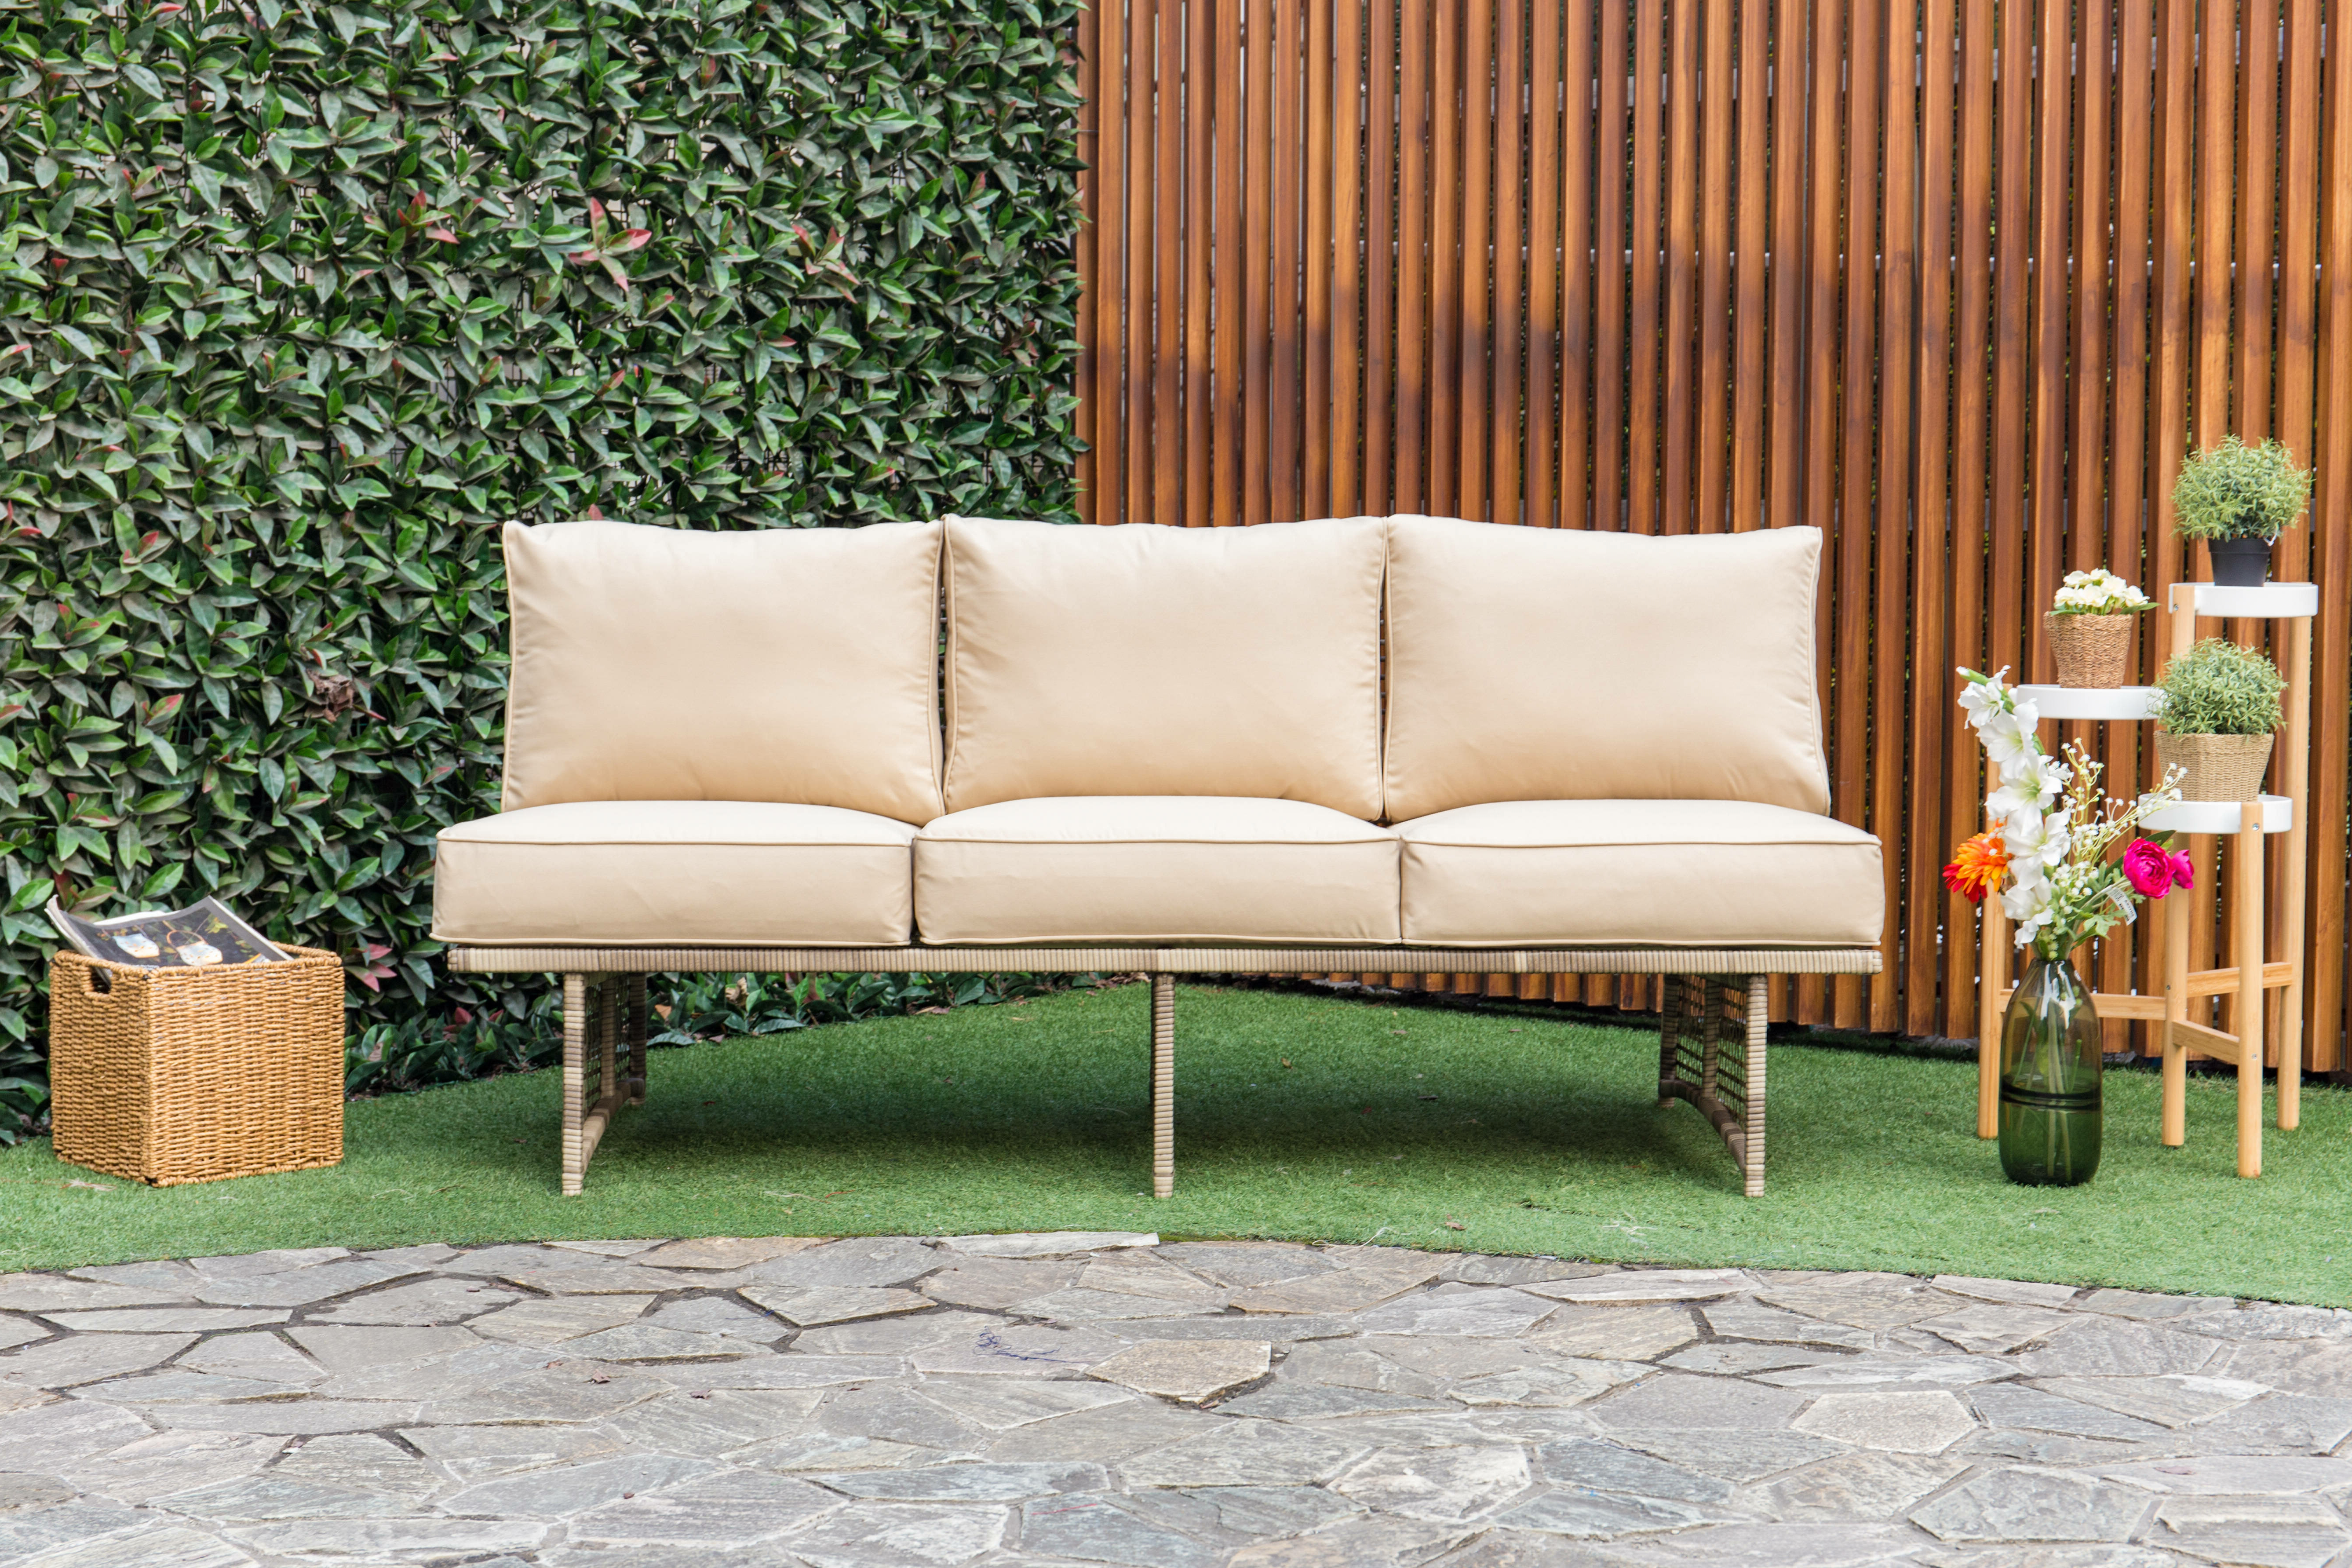 Widely Used Dakota Outdoor Rattan Patio Sofa With Cushions Within Corentin Patio Sofas (View 20 of 20)